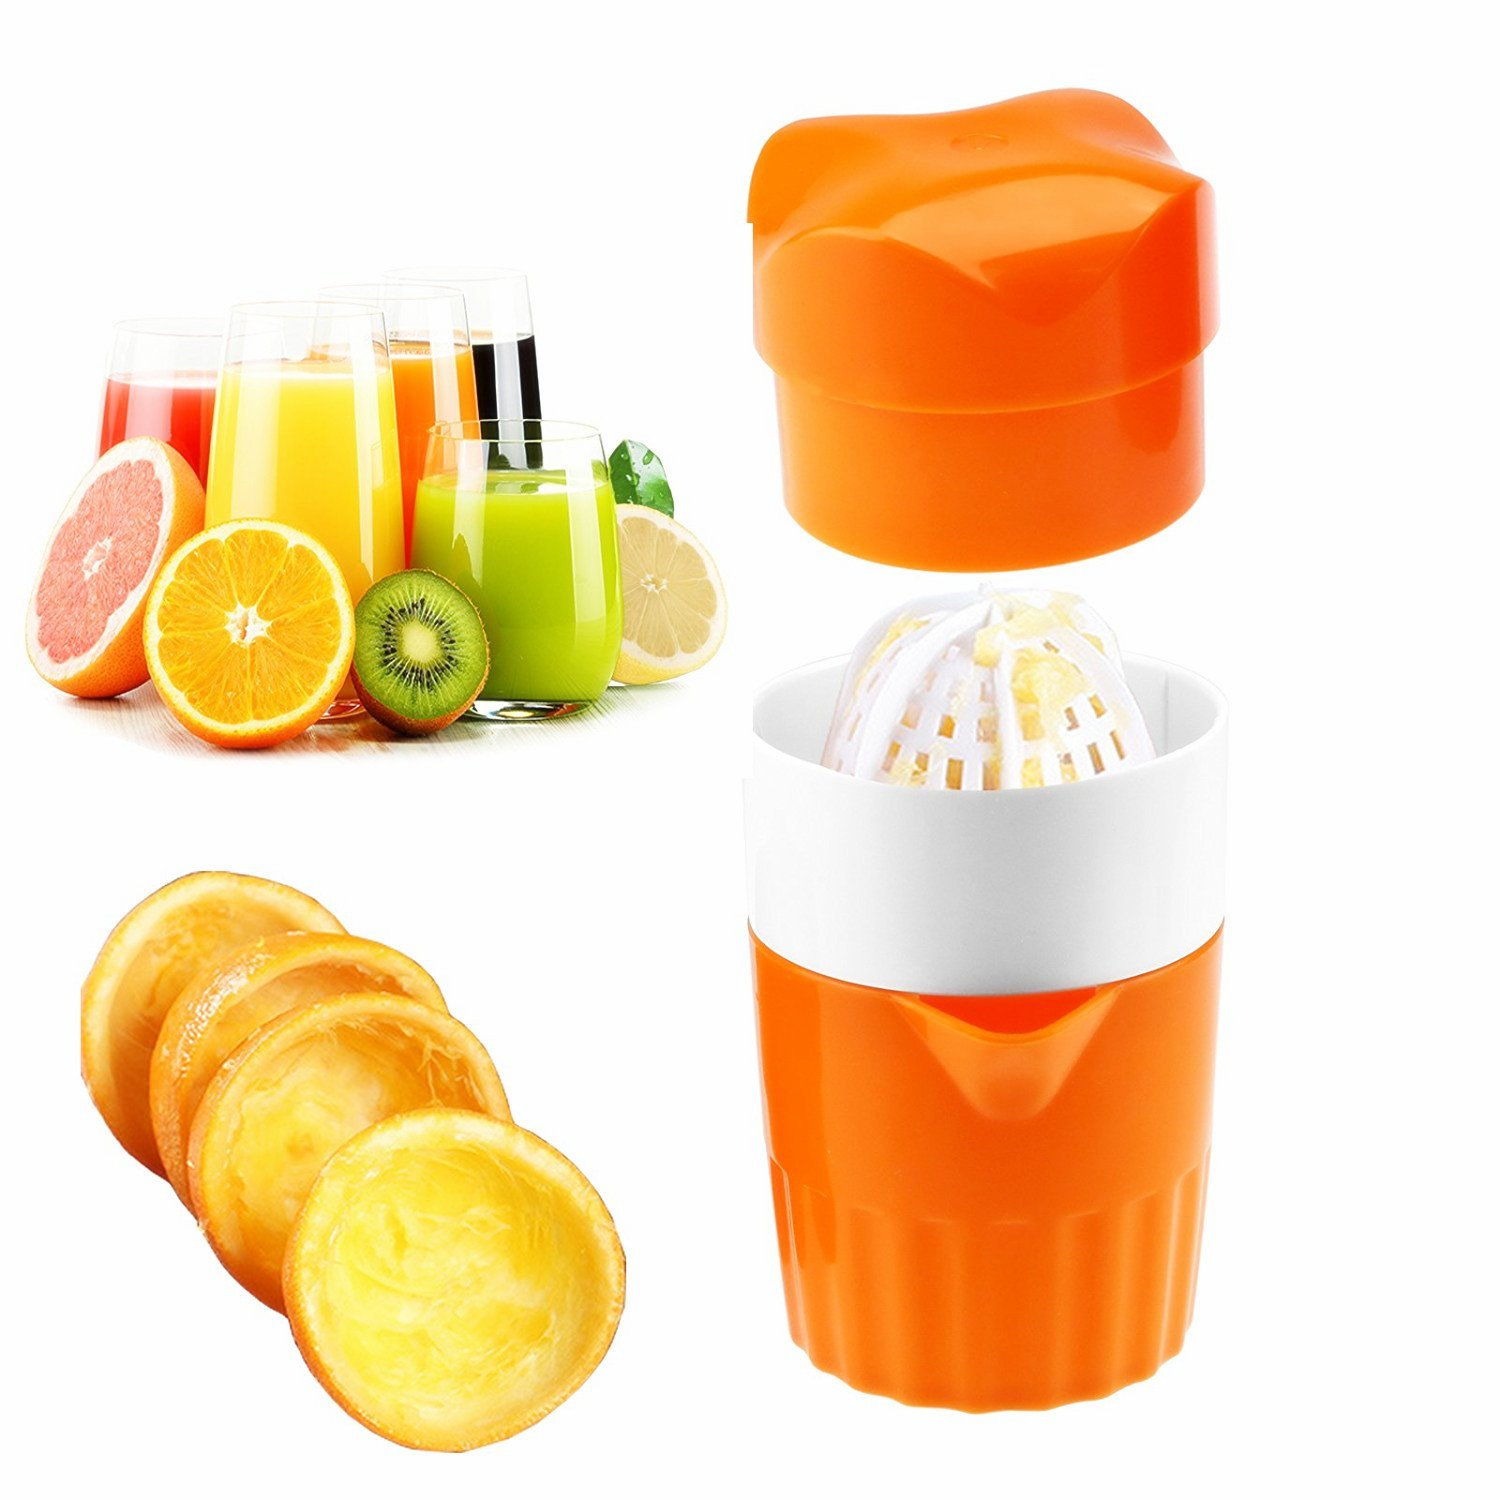 Manual Lid Rotation Citrus Juicer, Lemon, Orange, Tangerine & Lime Juice Squeezer: Press & Squeeze Fruits Easily! Professional Portable Presser w/ Pulp Filter & Cup, Squeezing Plastic Kitchen Tool Aisige